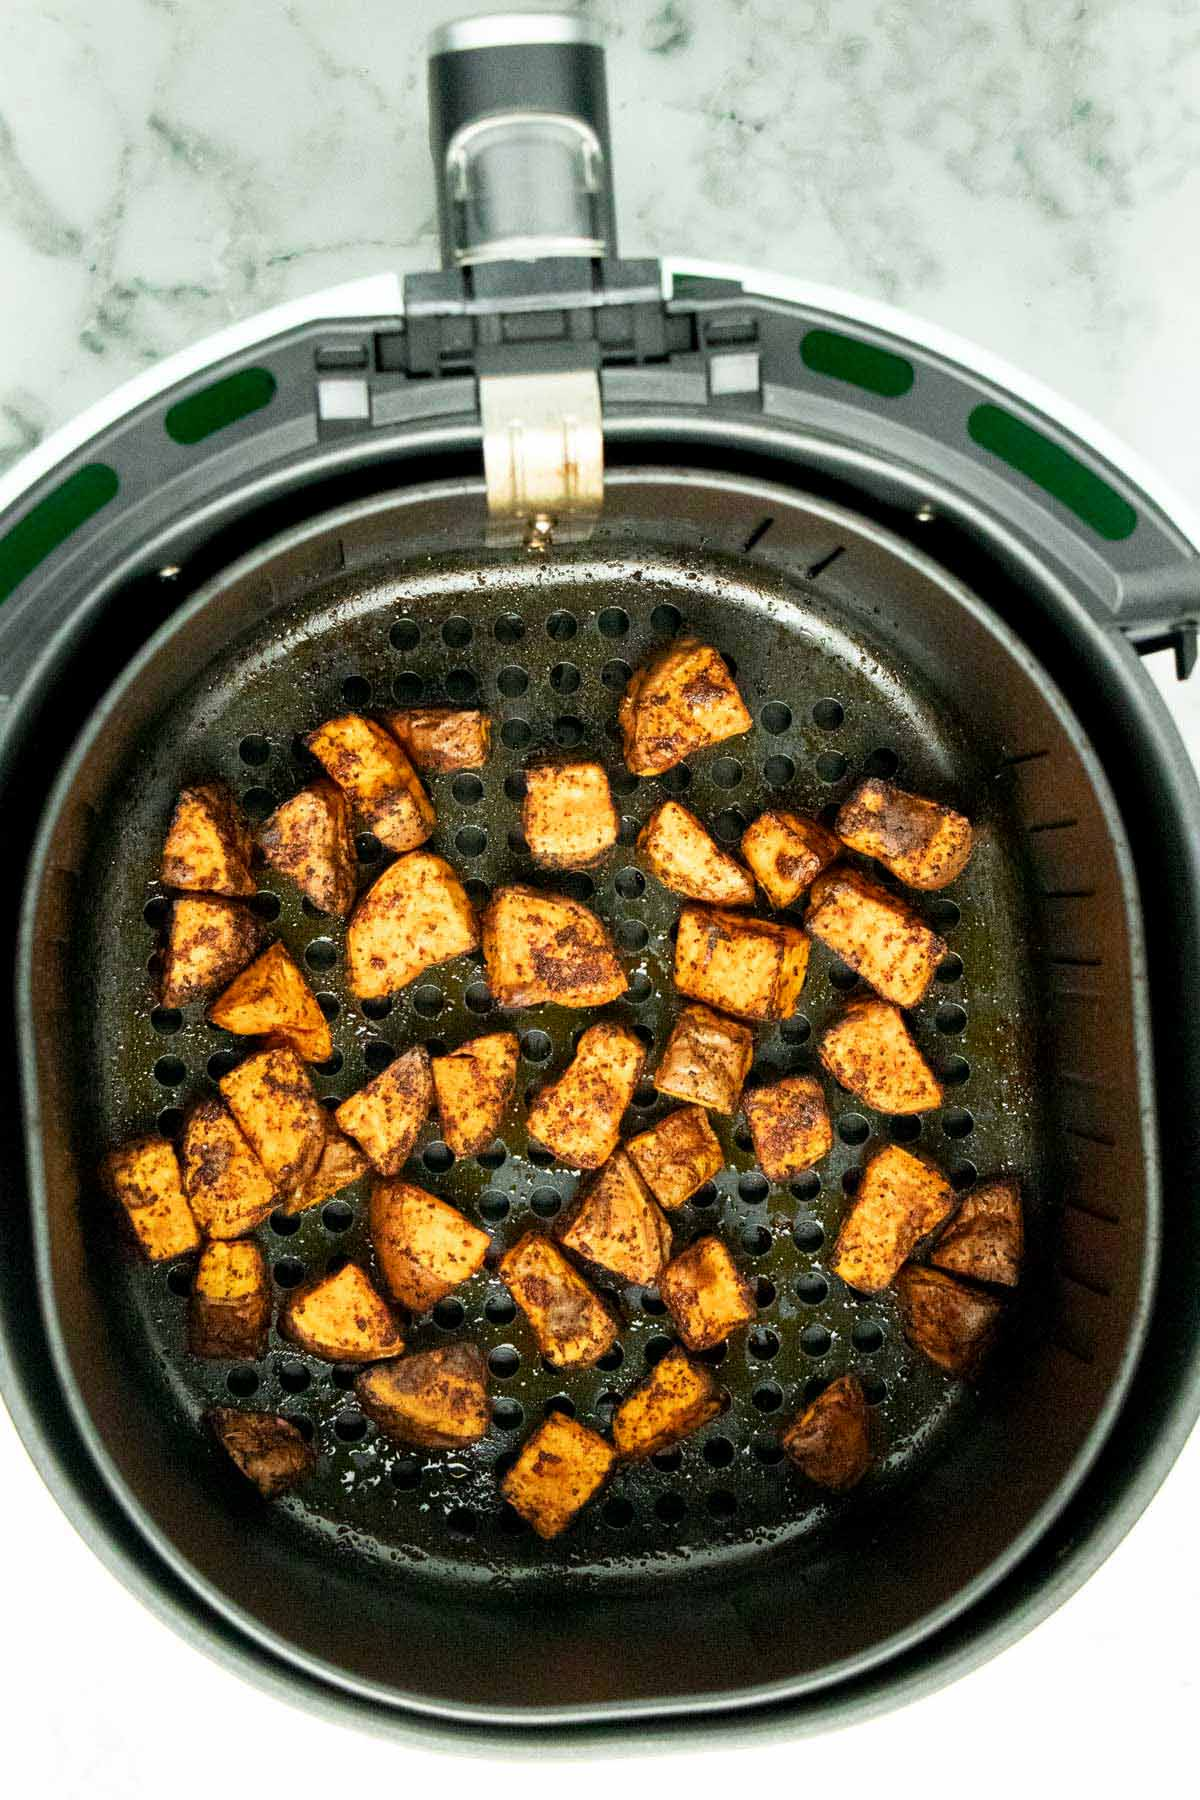 cooked sweet potato chunks in the air fryer basket